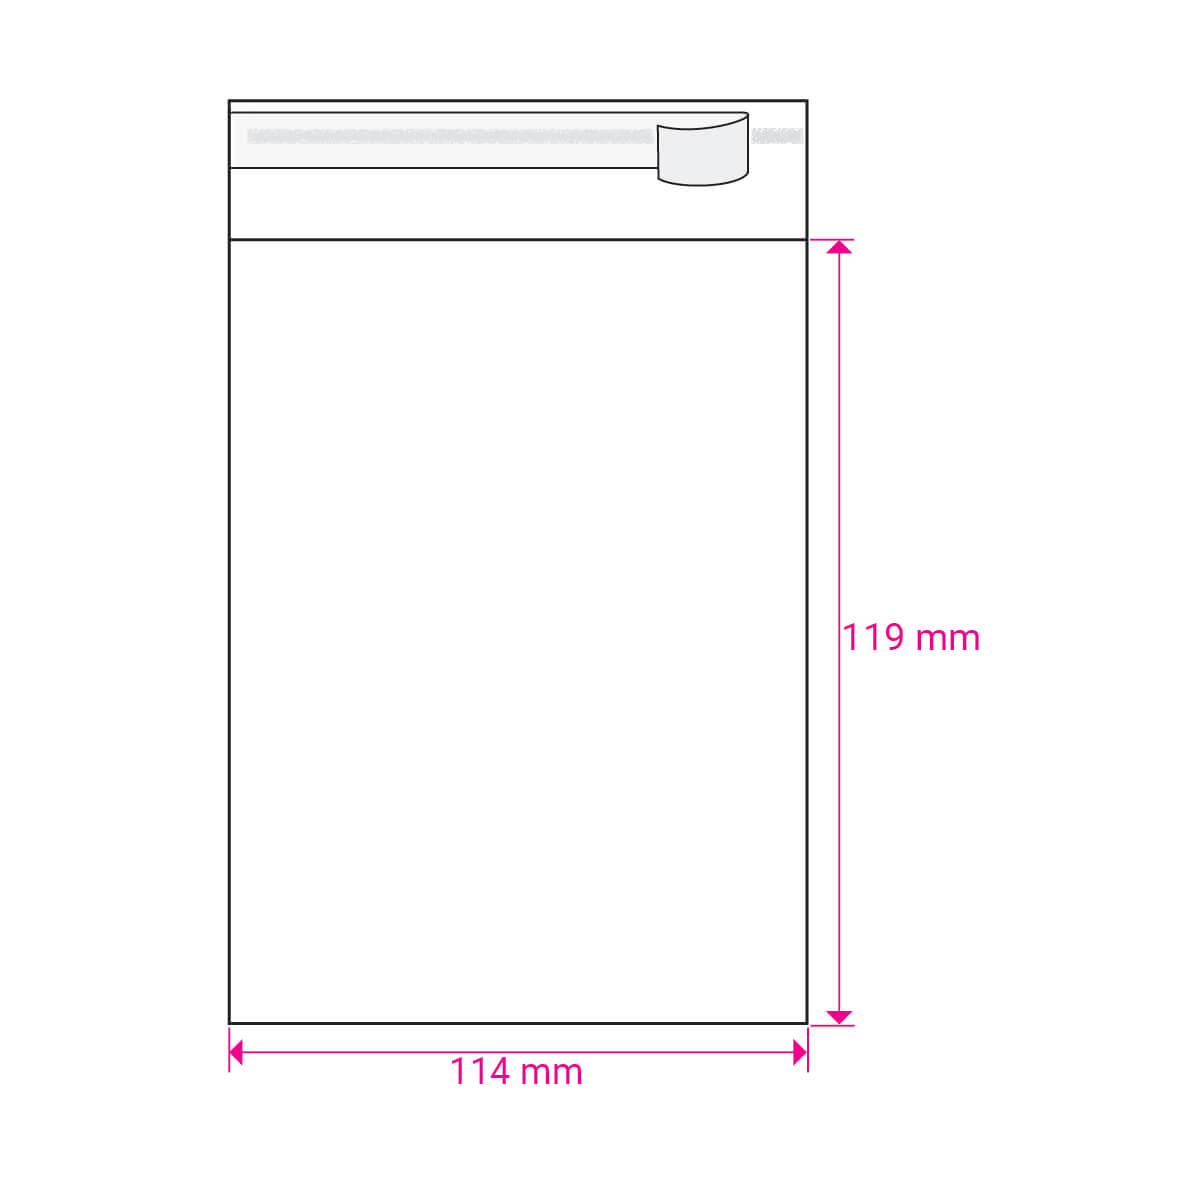 CLEAR CELLO BAGS to fit: 113 mm Square (SELF ADHESIVE)